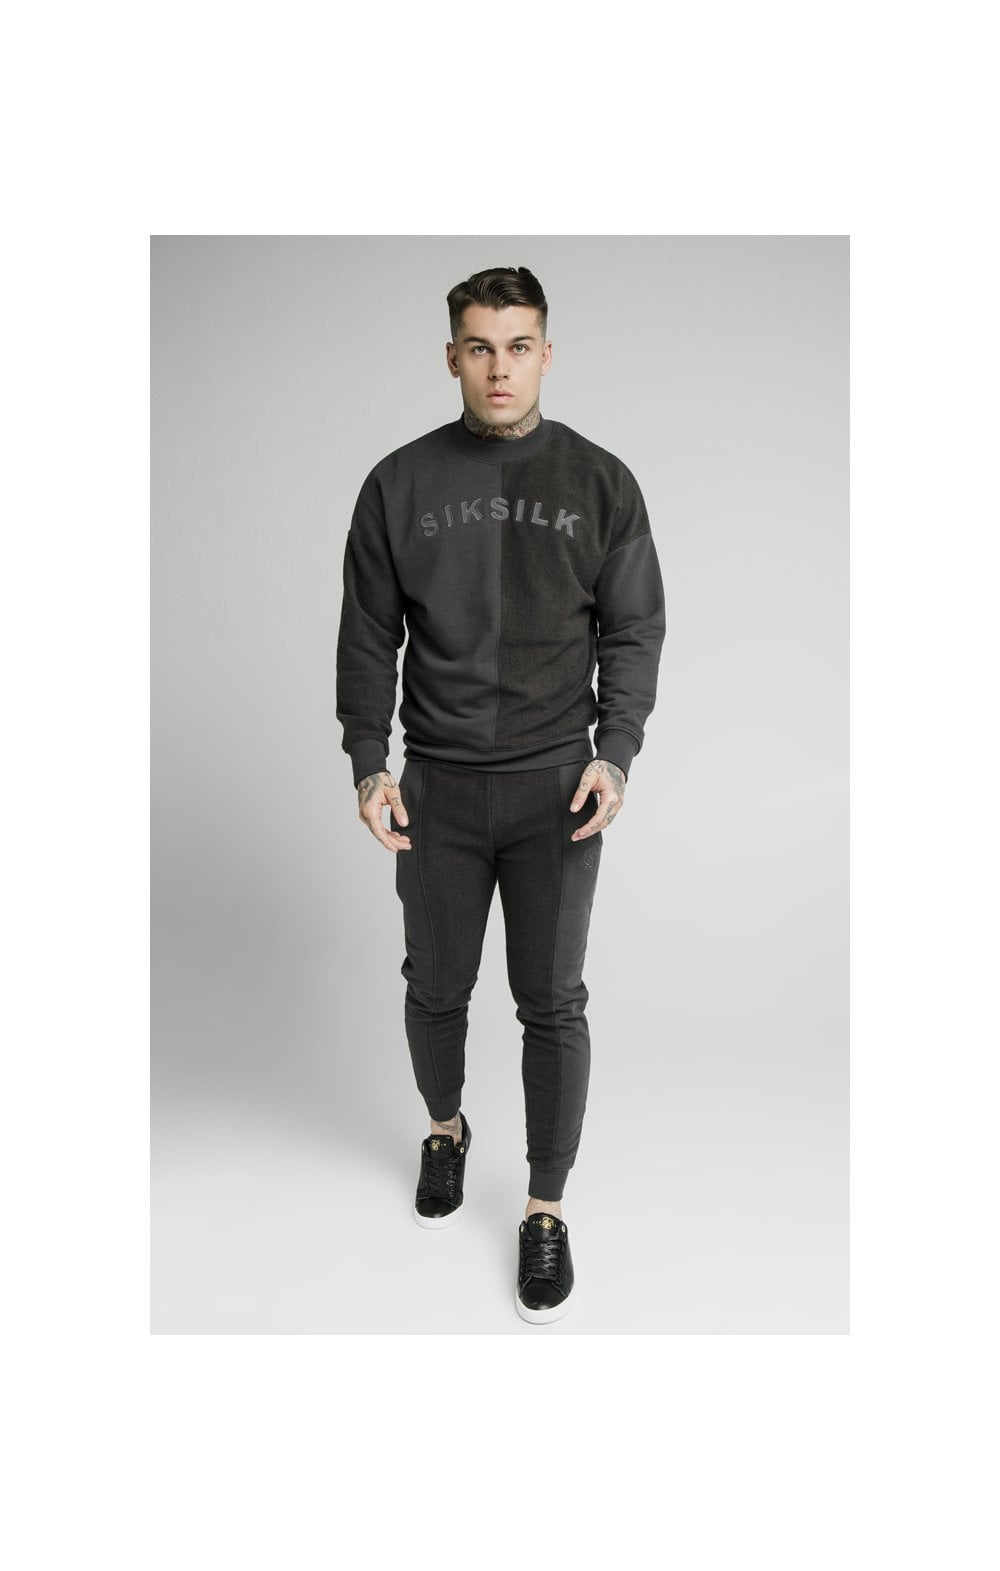 Load image into Gallery viewer, SikSilk Half & Half Crew Sweater – Washed Grey (3)